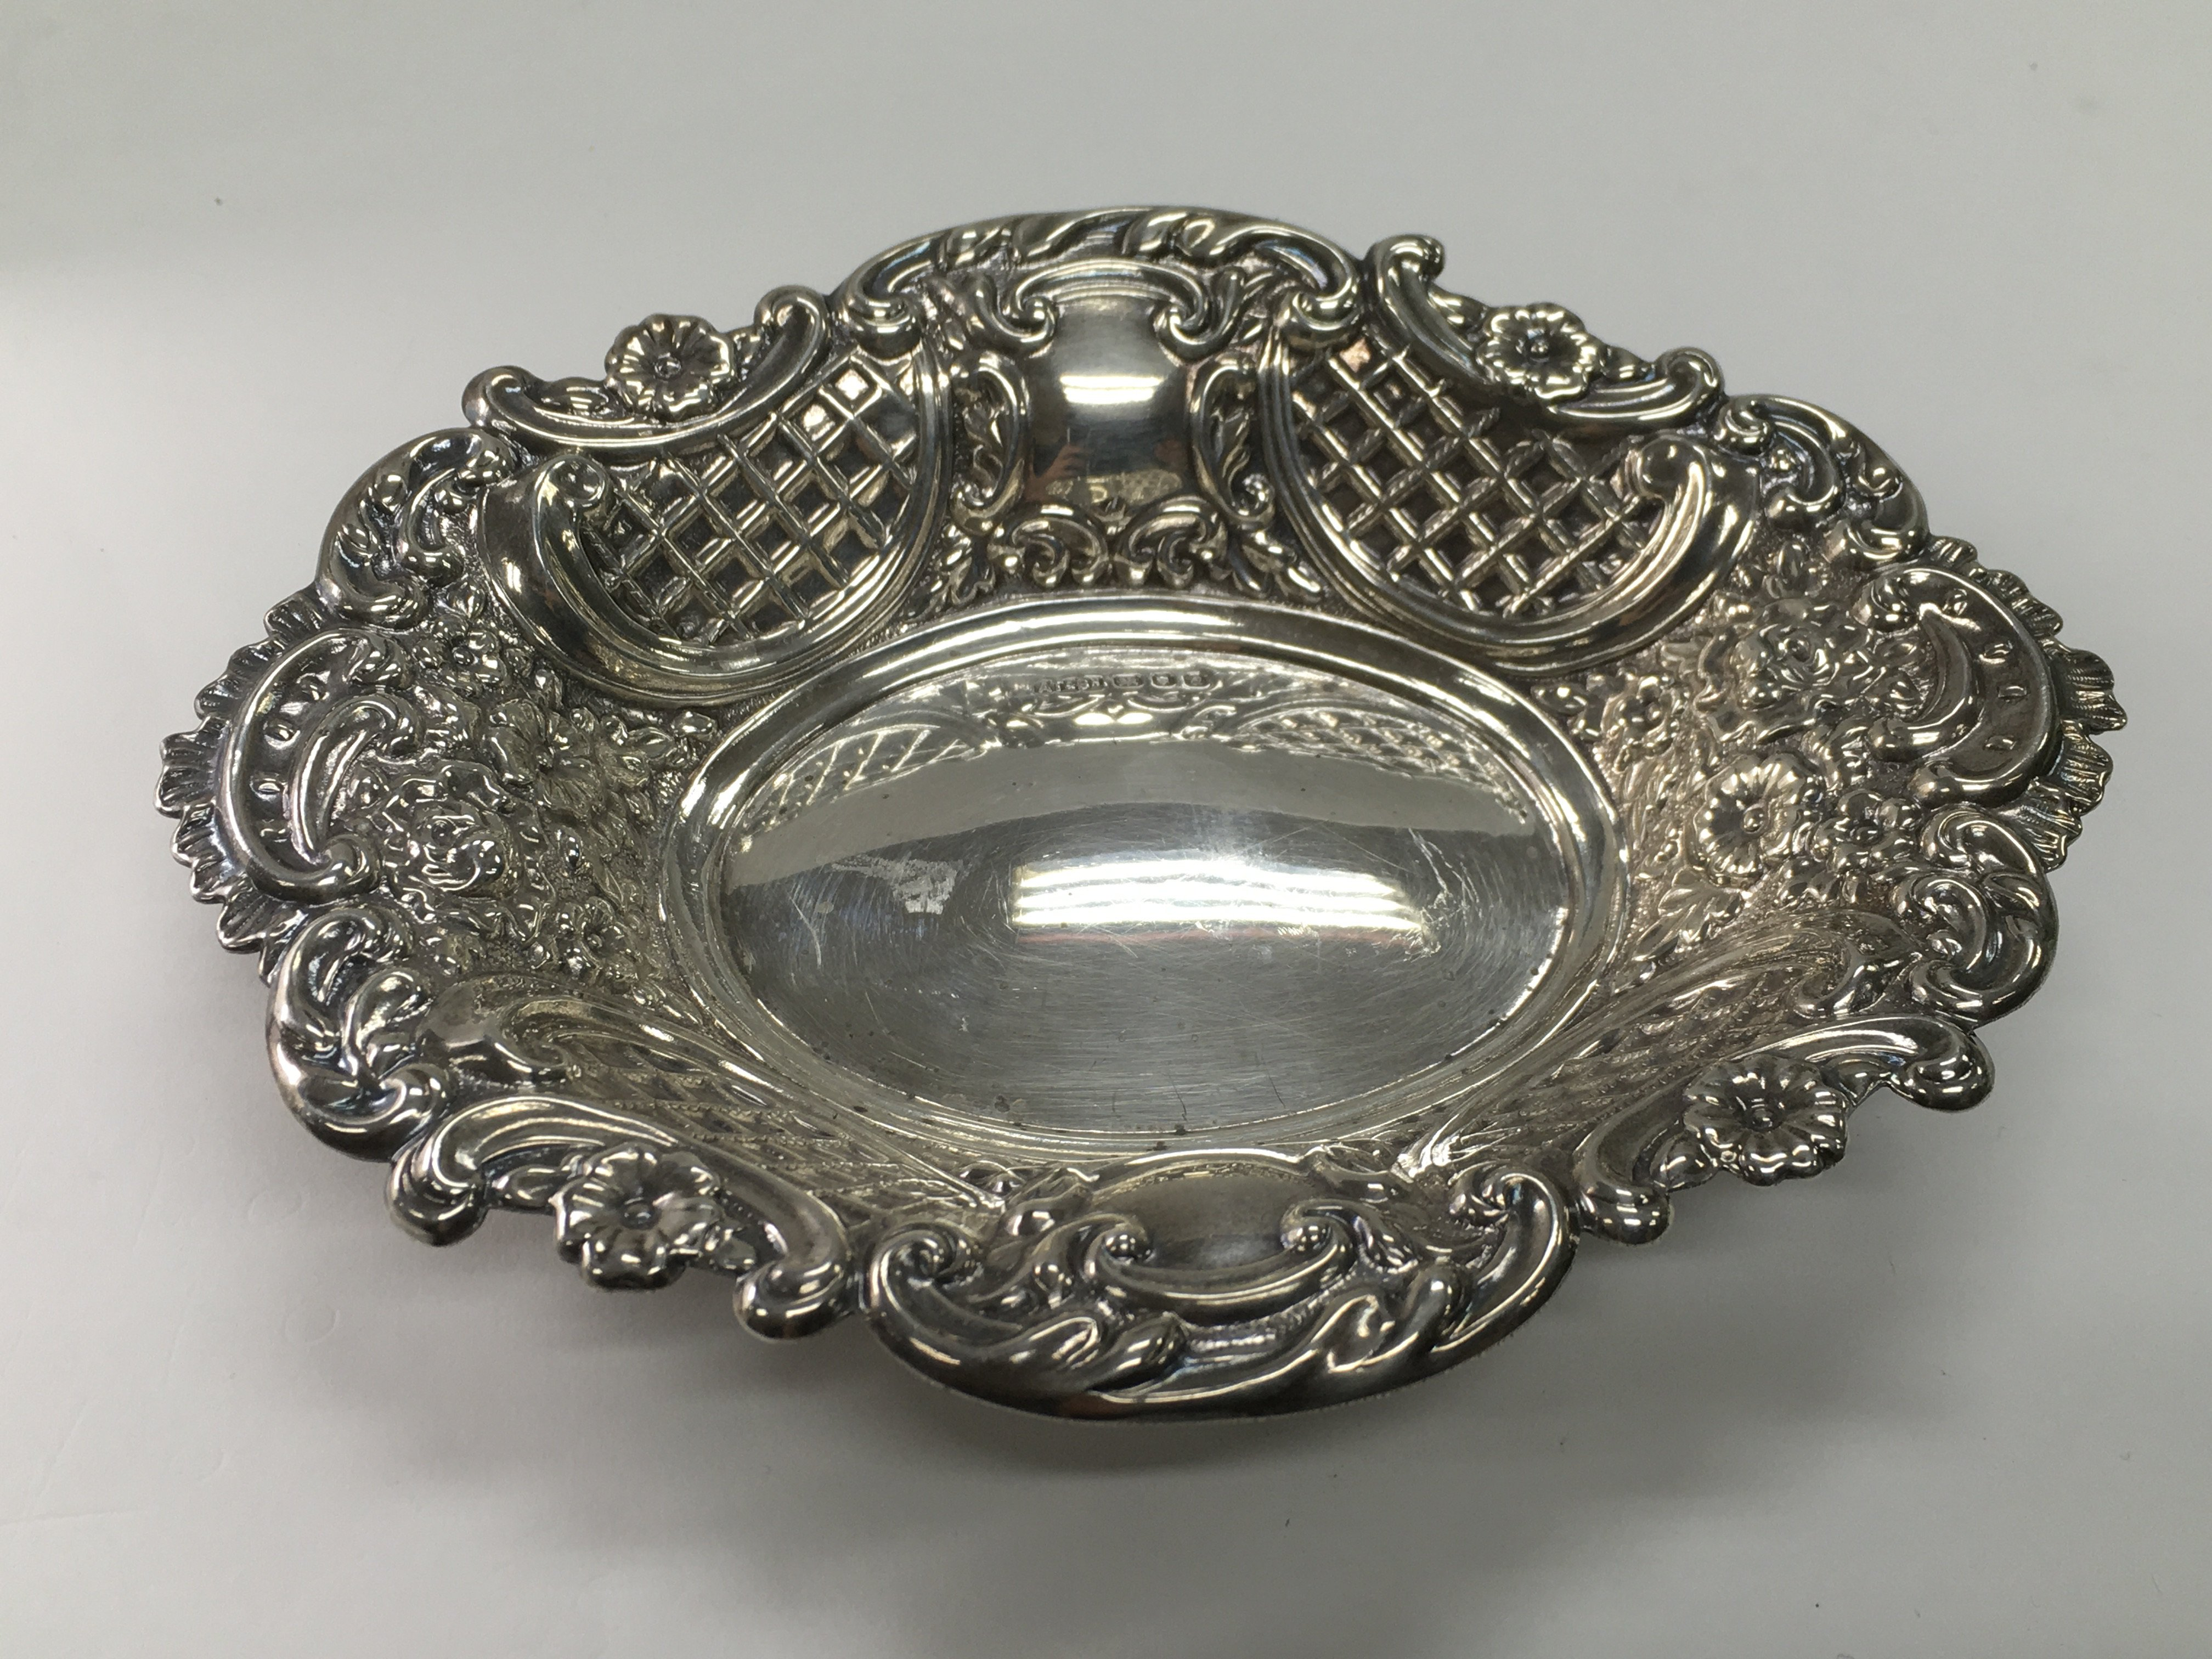 Lot 30 - A silver dish with repousse work decoration, Londo